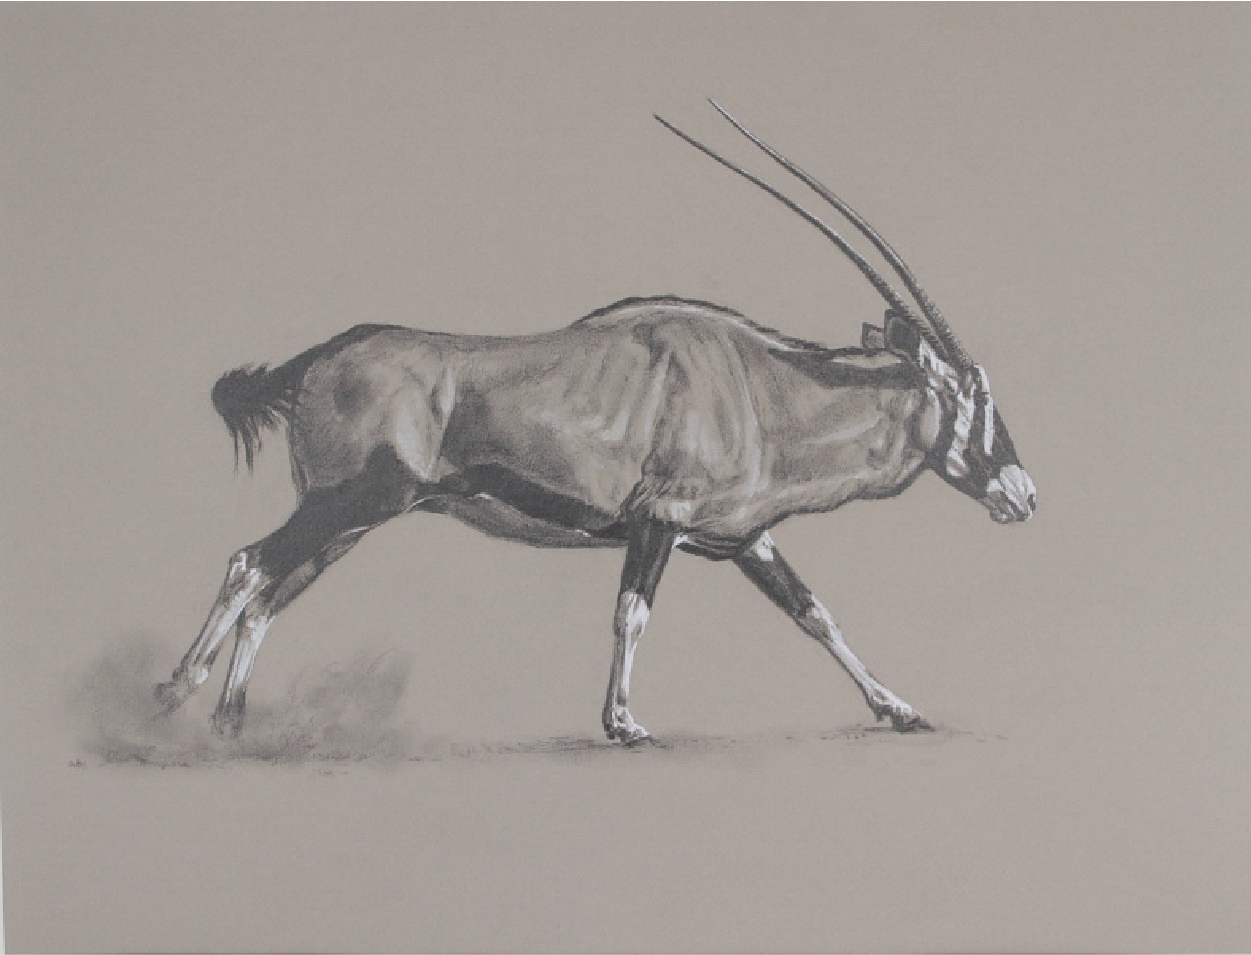 Running Gemsbok | Ashley Boon | Wildlife Artist | Big Game Hunting